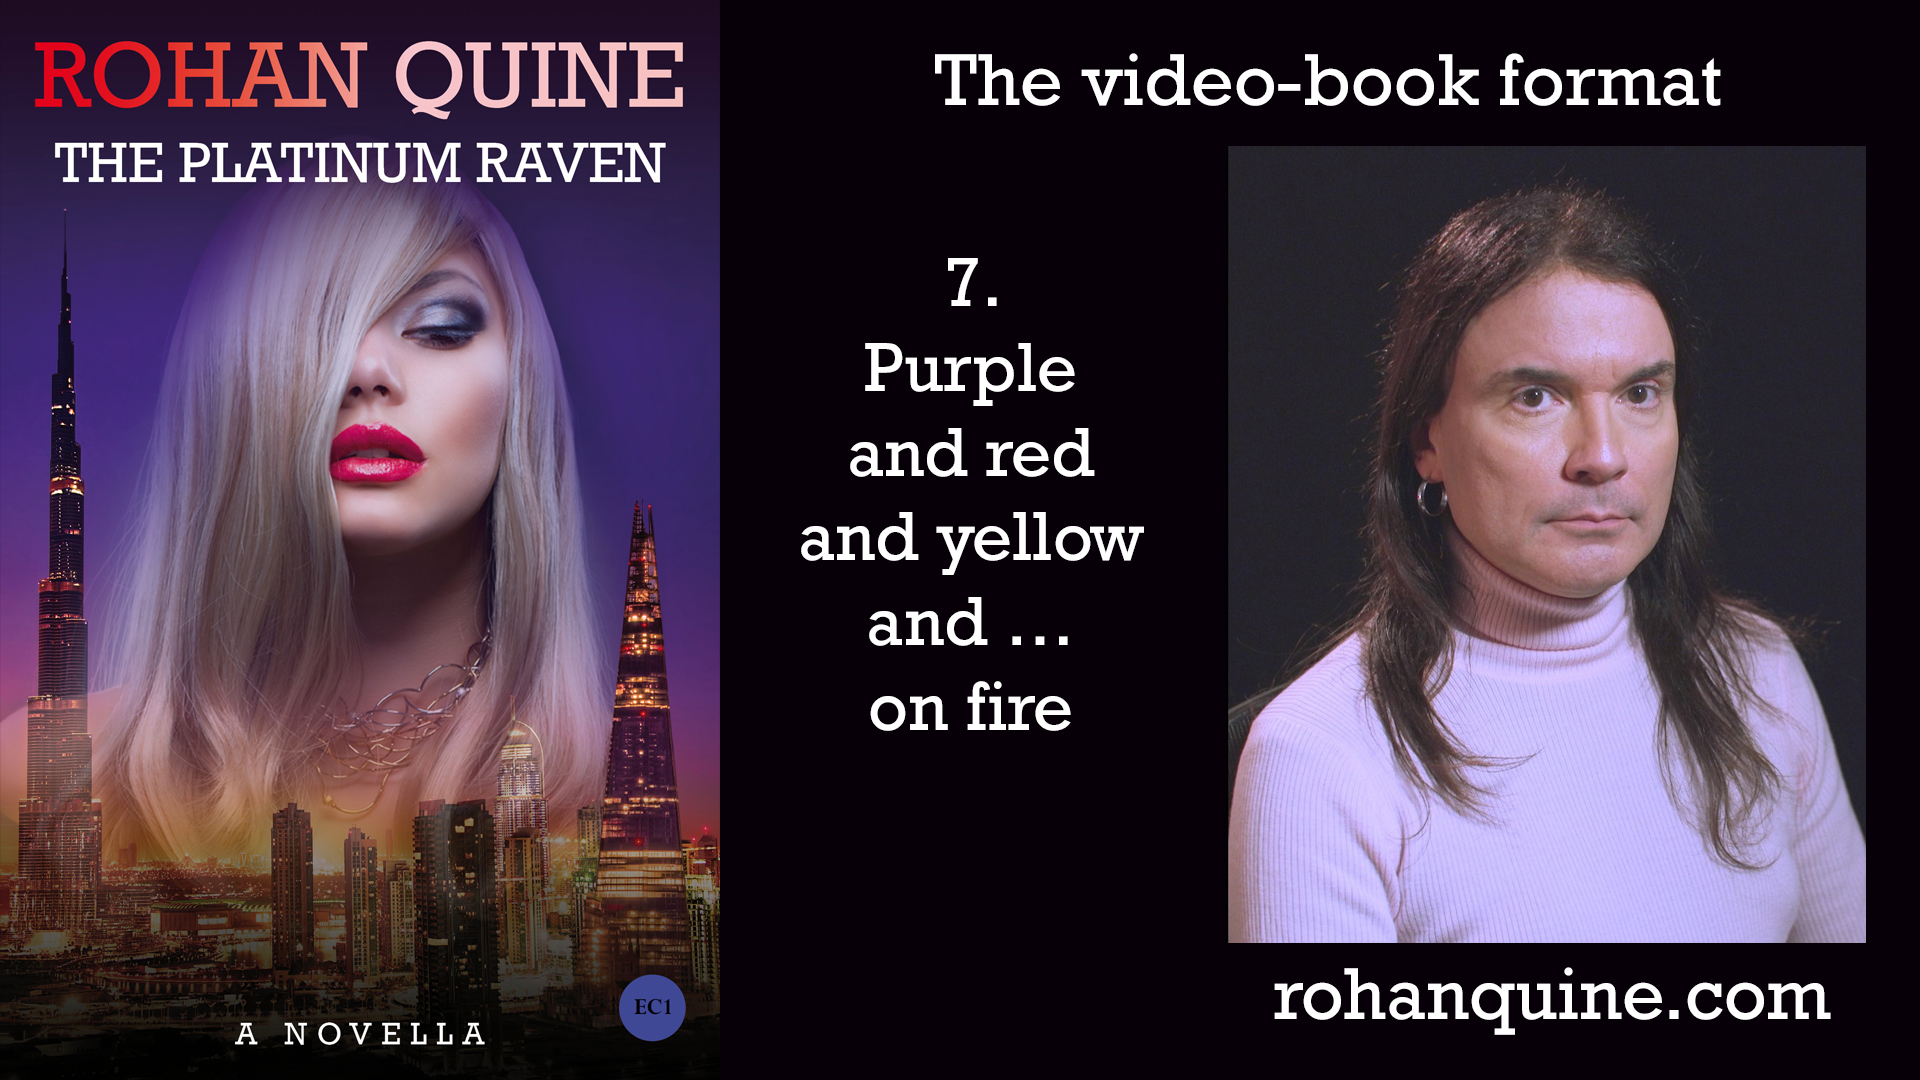 THE PLATINUM RAVEN by Rohan Quine - video-book format - chapter 7